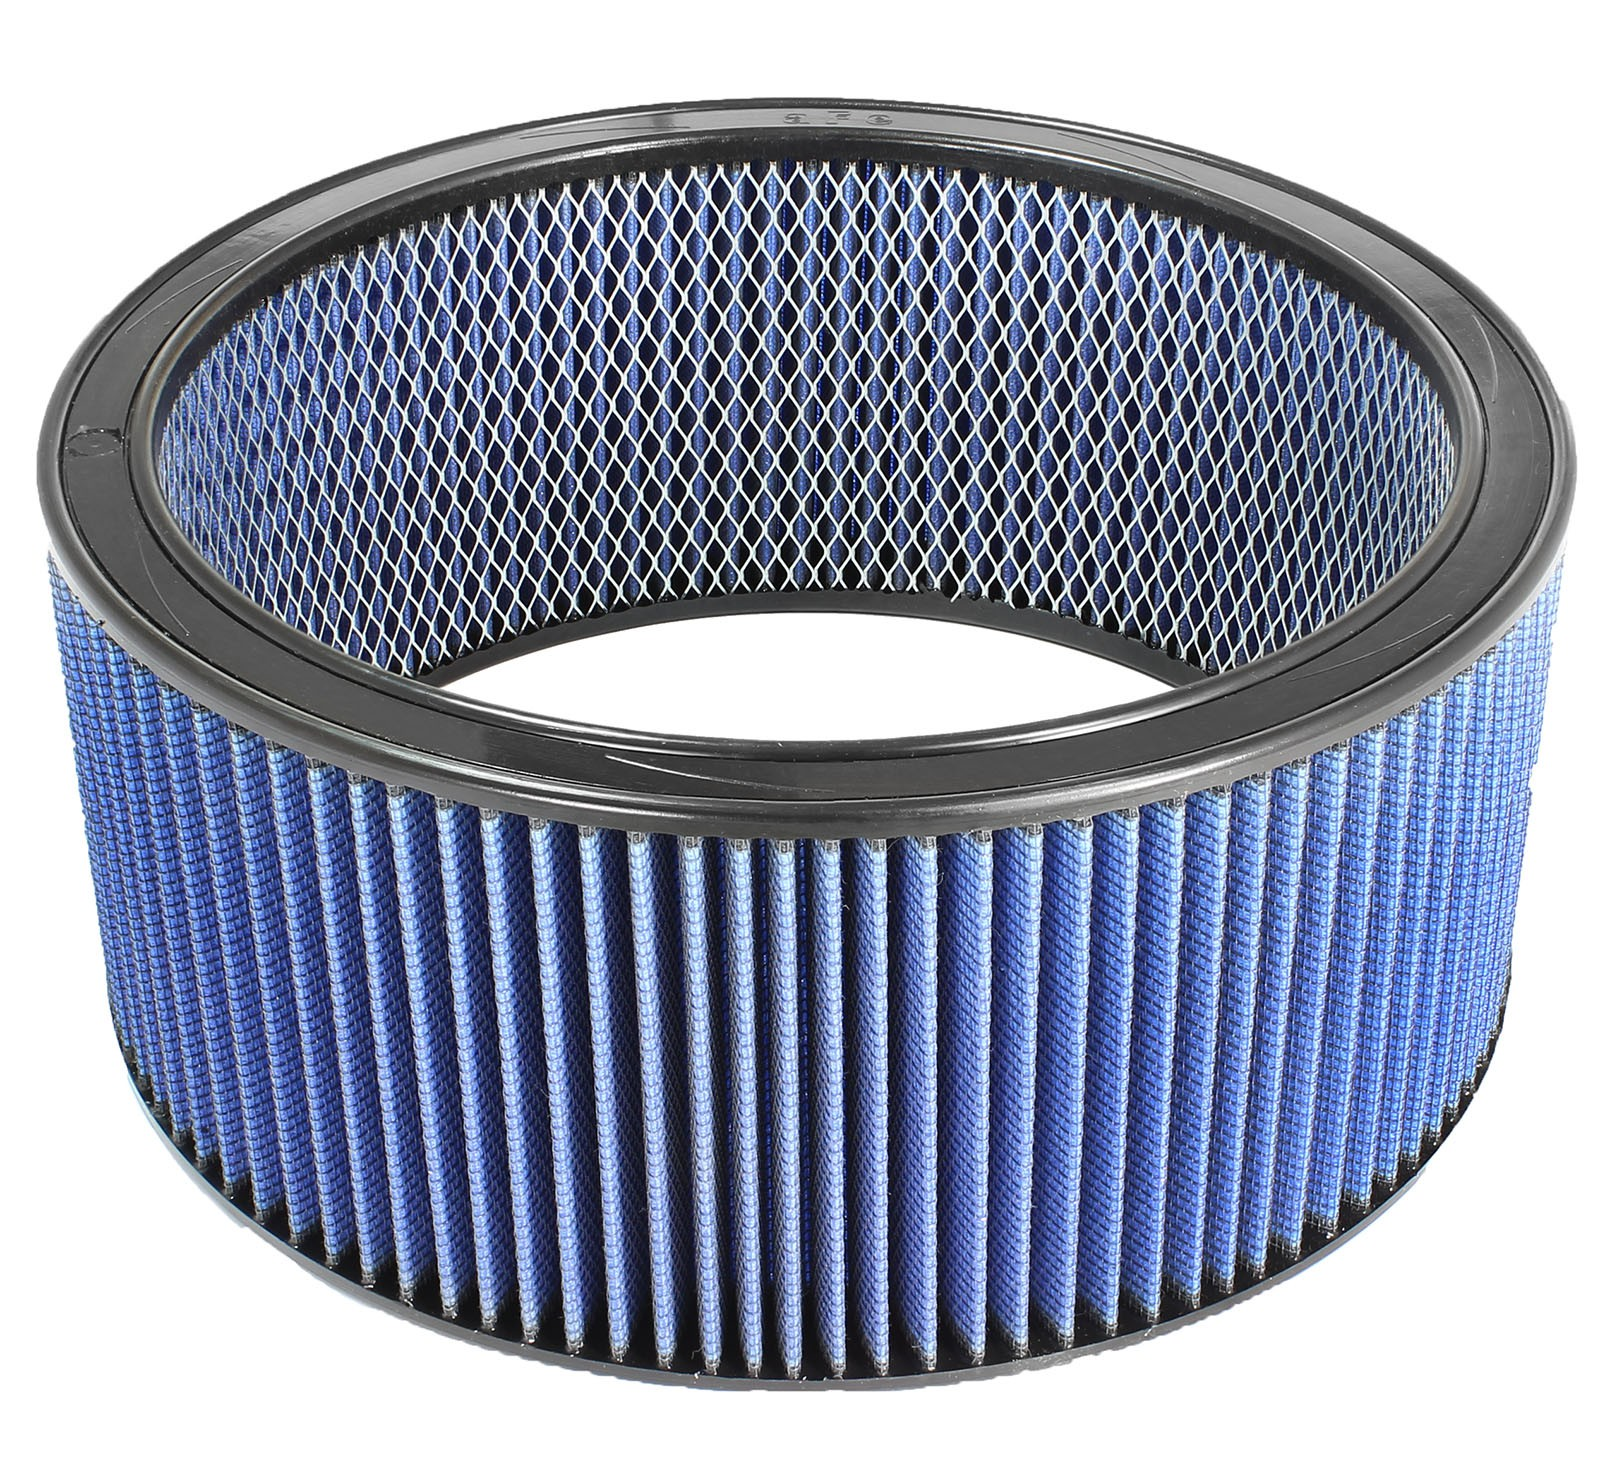 aFe POWER 10-20015 Magnum FLOW Pro 5R Air Filter